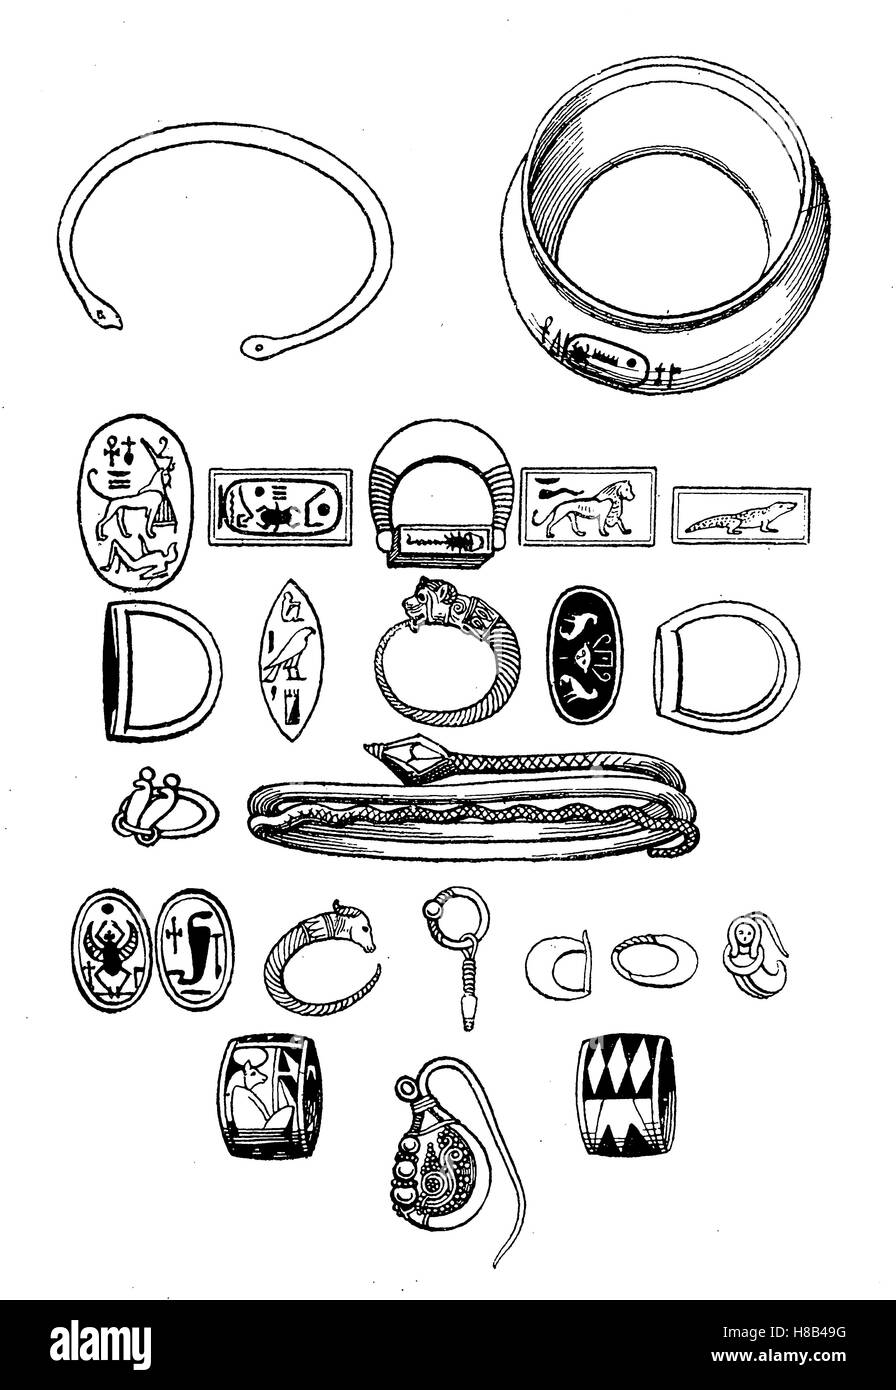 ancient egypt, Jewelery, bracelets, rings, earrings, 18th dynasty, History of fashion, costume story - Stock Image